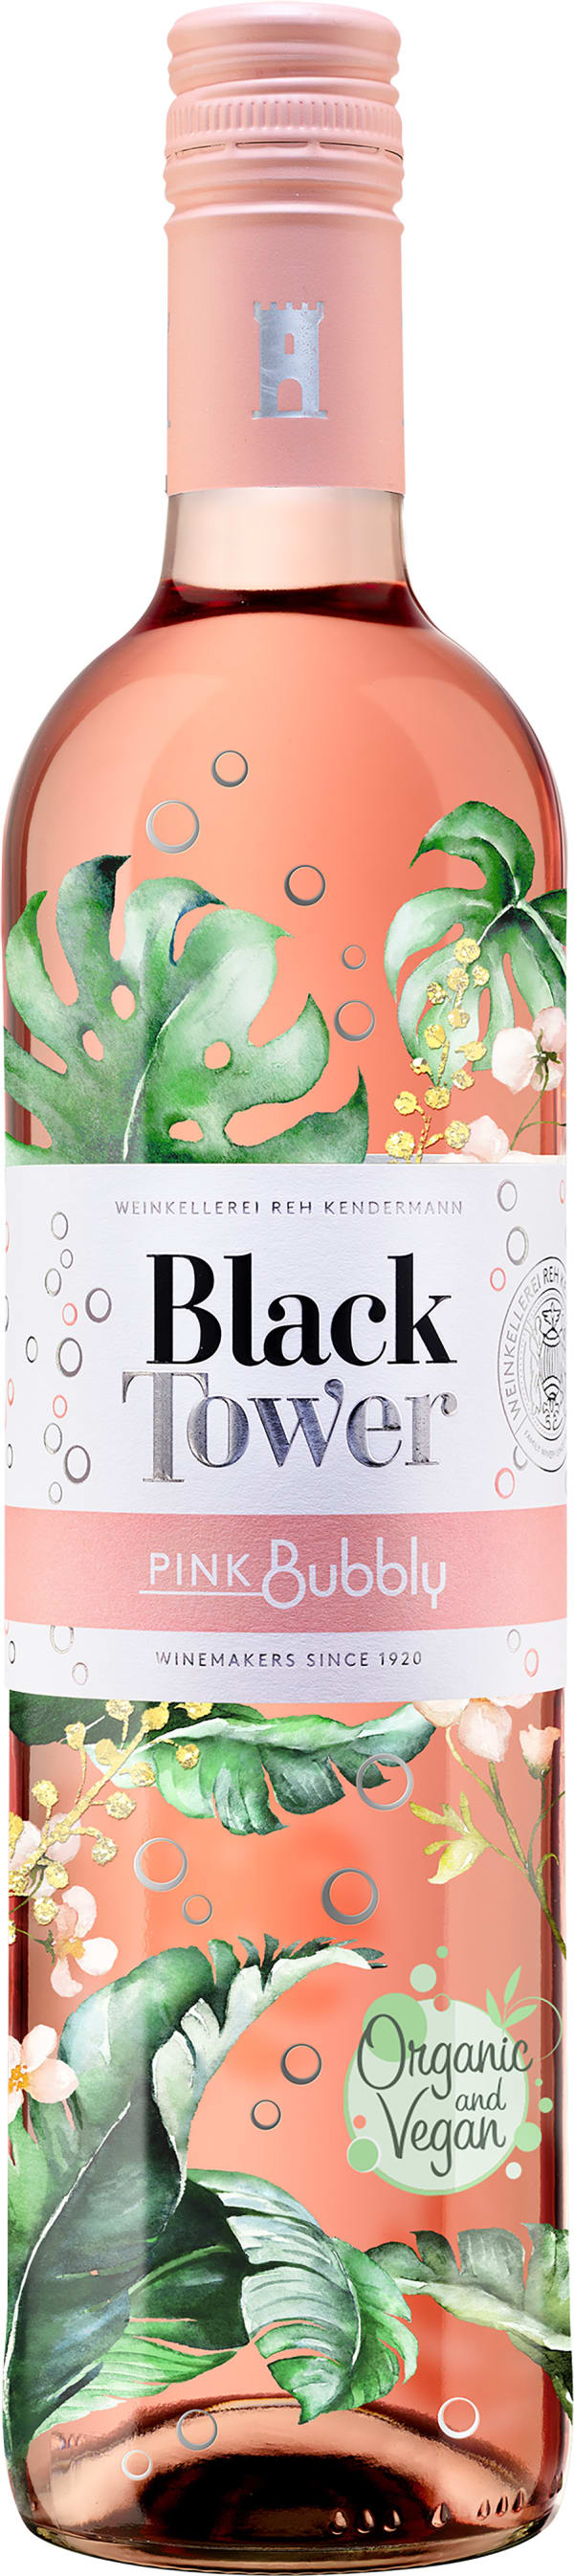 Black Tower Pink Bubbly 2015